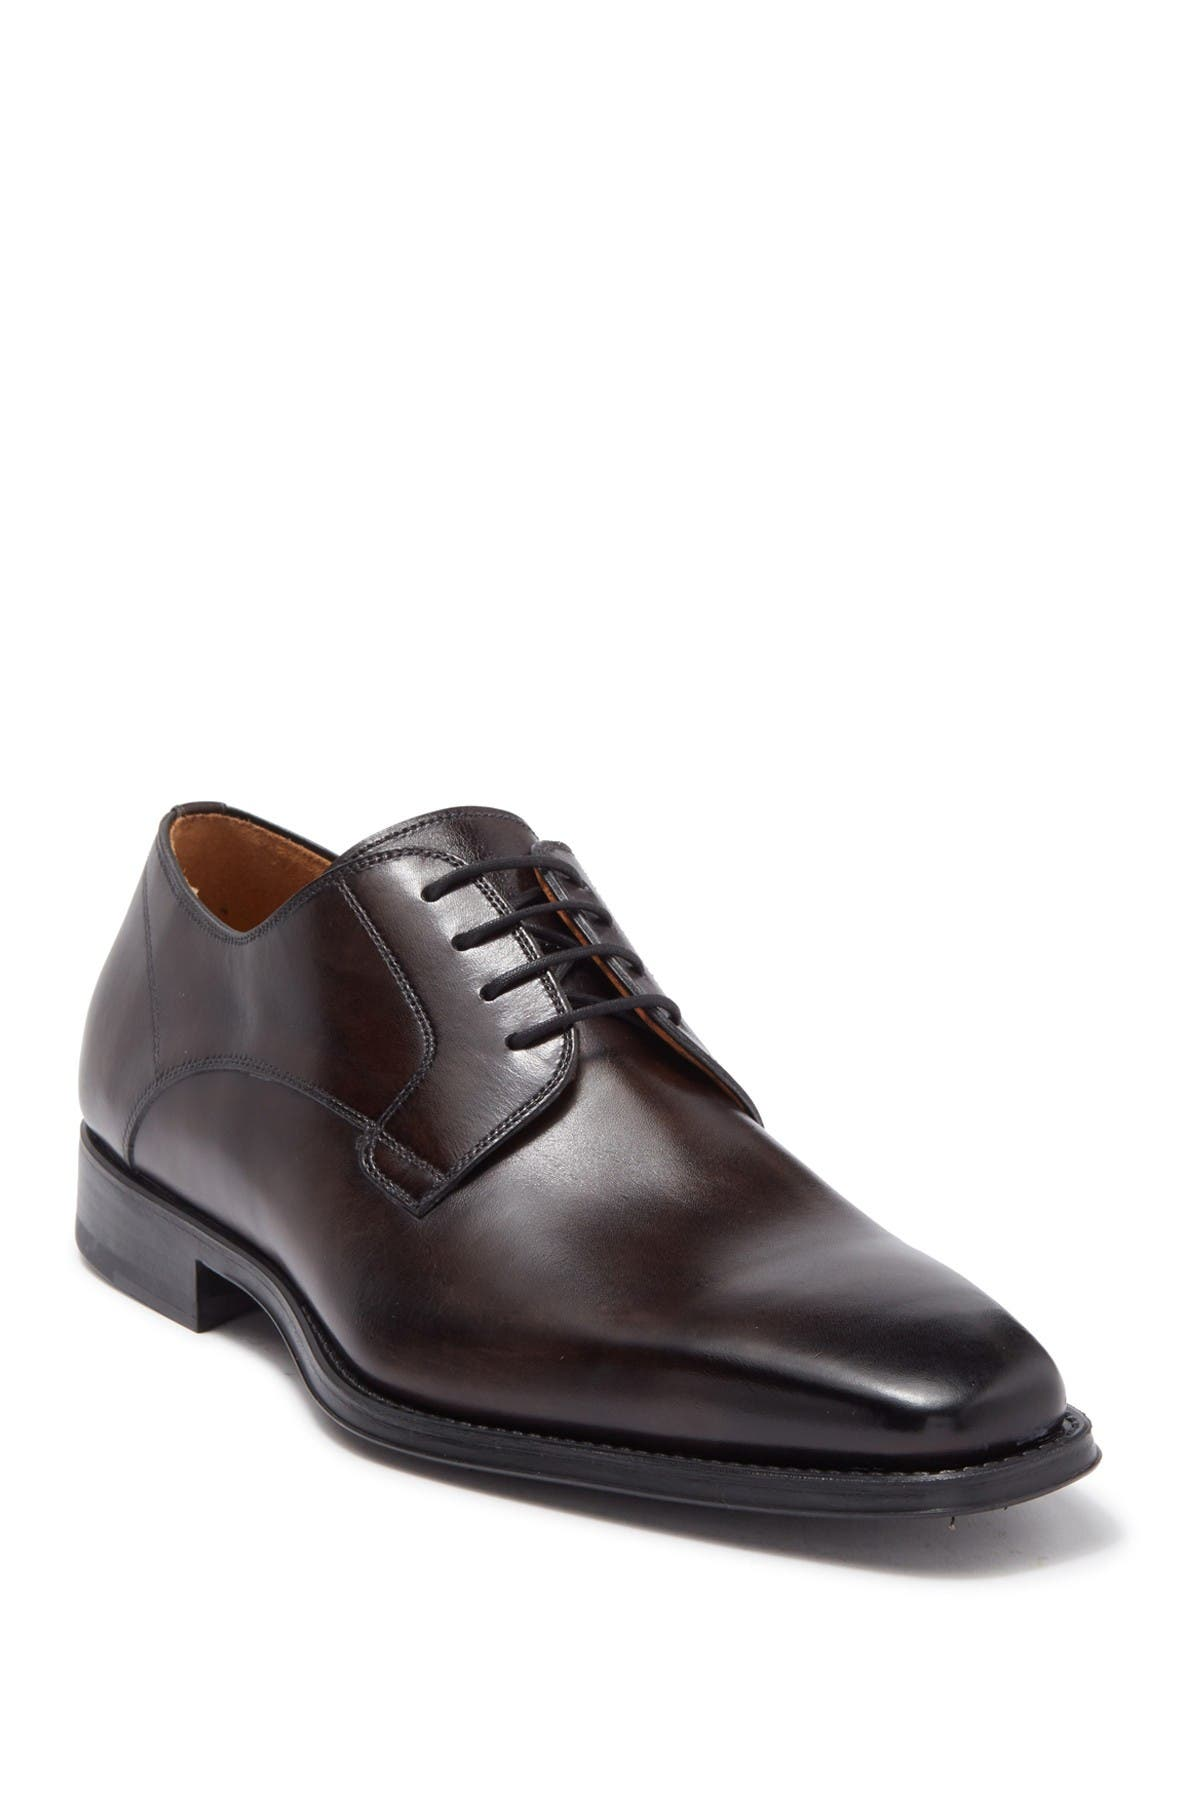 Image of Magnanni Knight Grey Derby - Wide Width Available